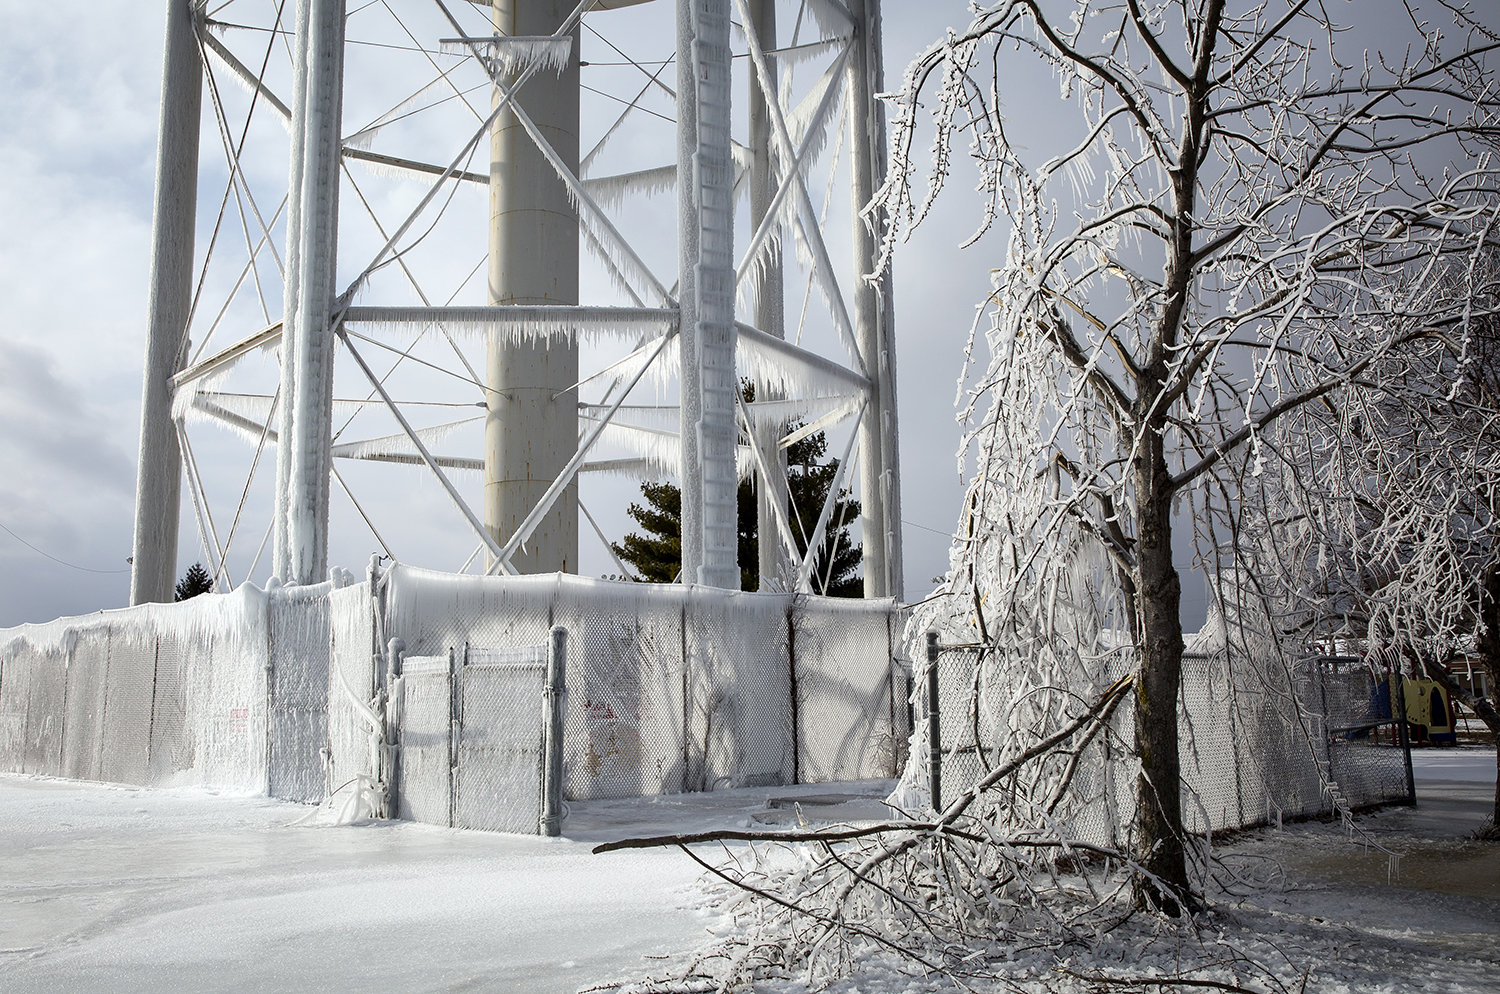 A faulty valve is blamed for allowing the water tower in Chatham to overflow, which left the structure, the ground and trees in the area coated with ice Wednesday, Jan. 3, 2018 at Jaycee Park in Chatham, Ill. [Rich Saal/The State Journal-Register]